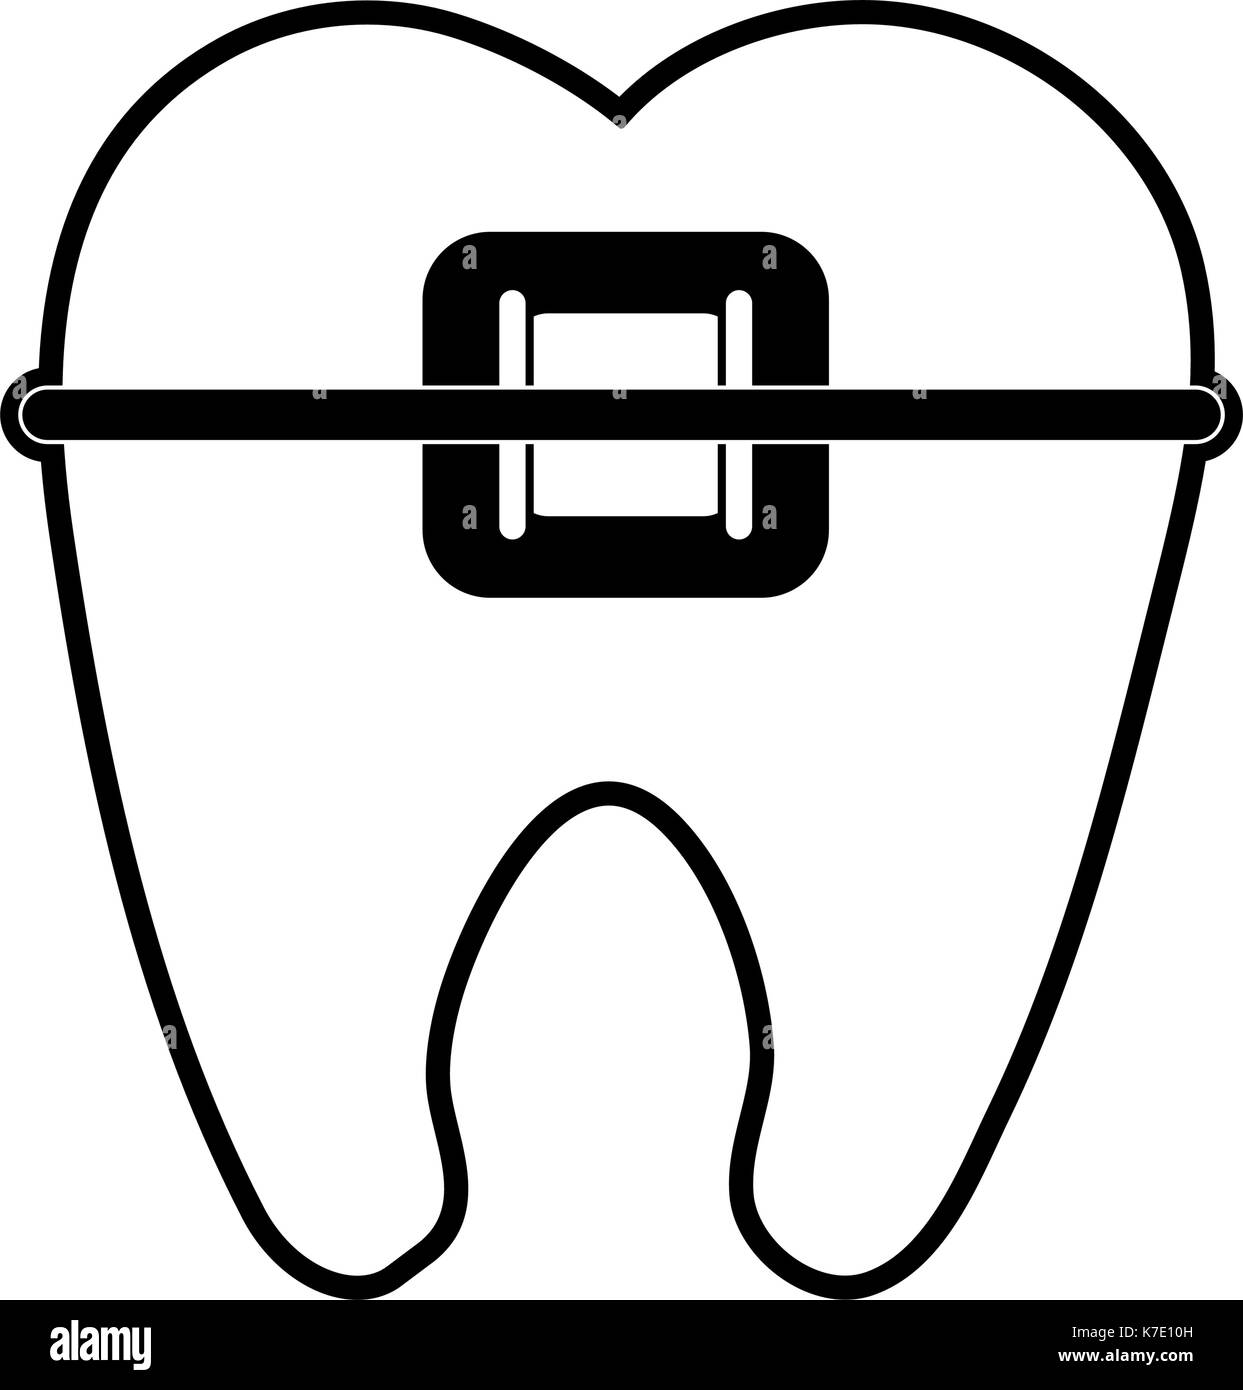 molar with braces dentistry icon image  - Stock Image